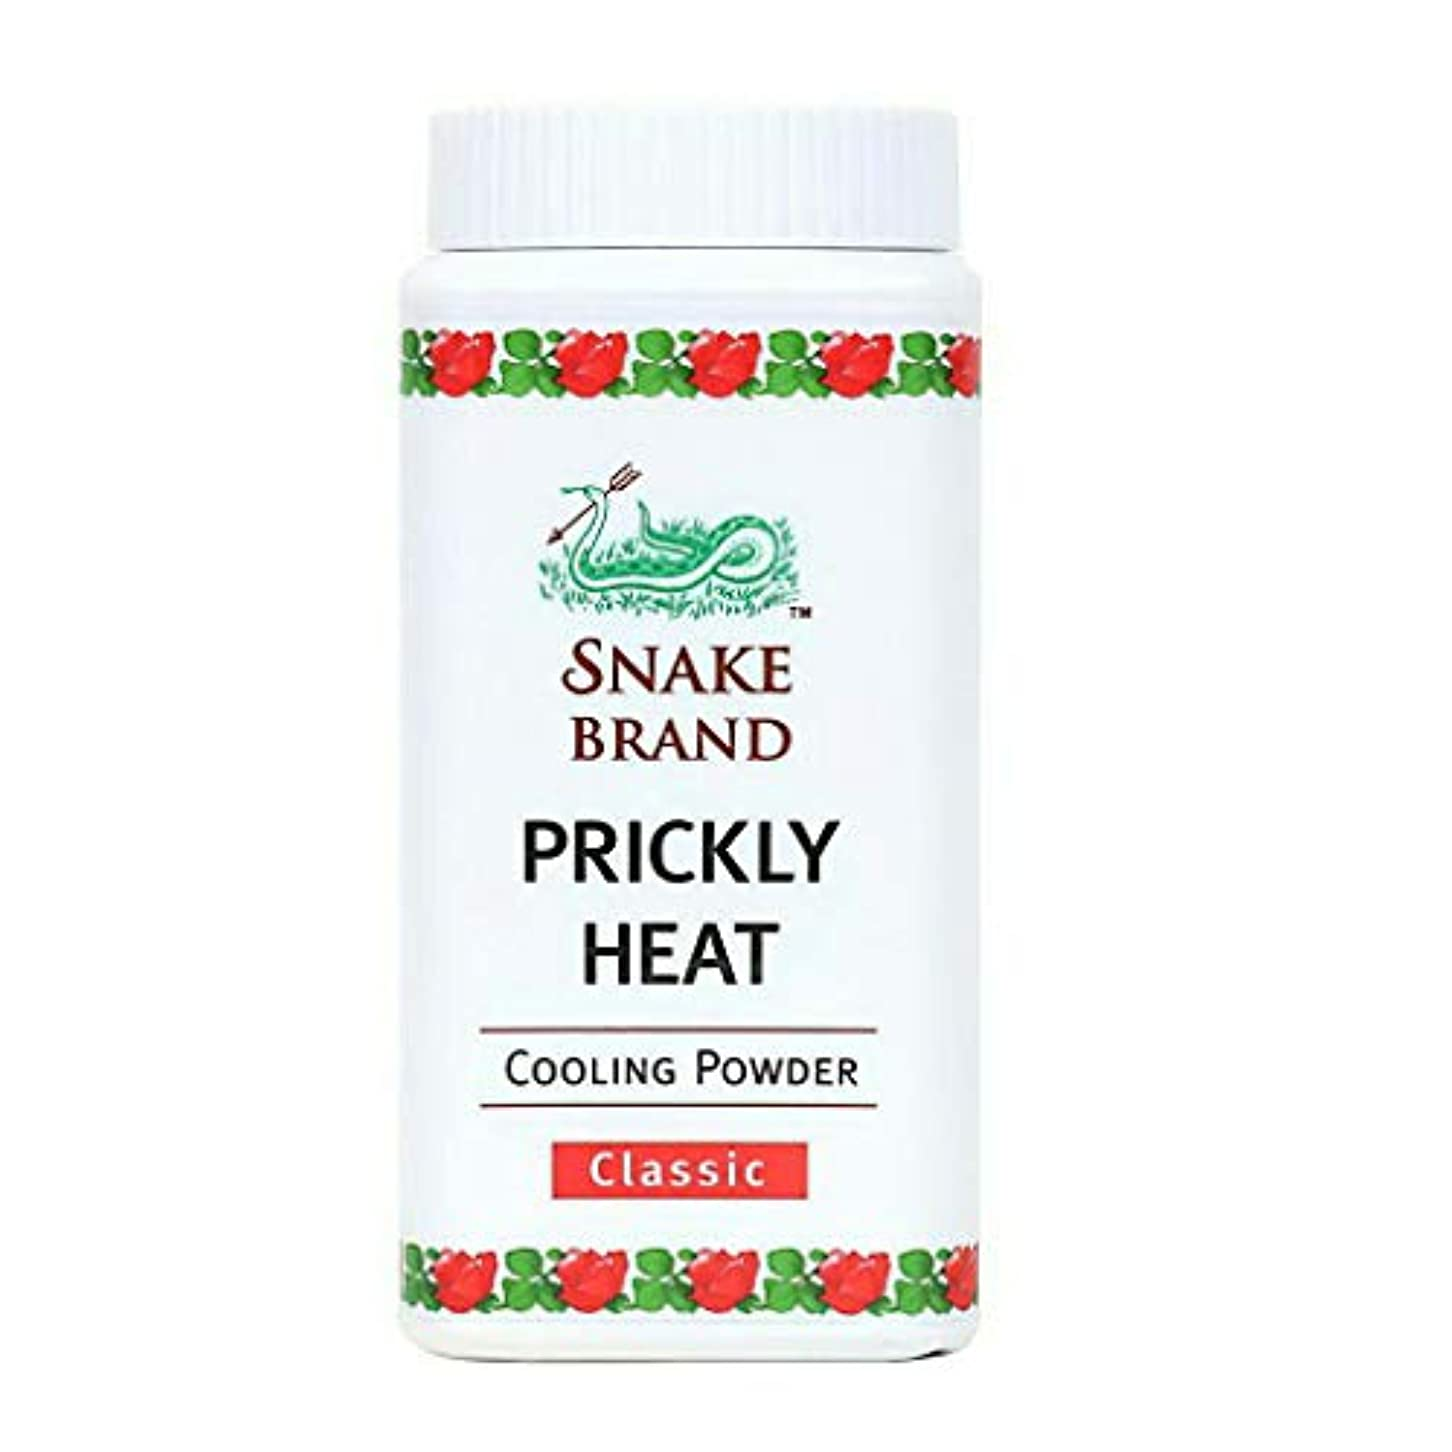 娘チャンピオンシップ捕虜Prickly Heat Cooling Fresh Refreshing Body Powder Skin Moisture Snake Brand Cooling Powder Classic 50g